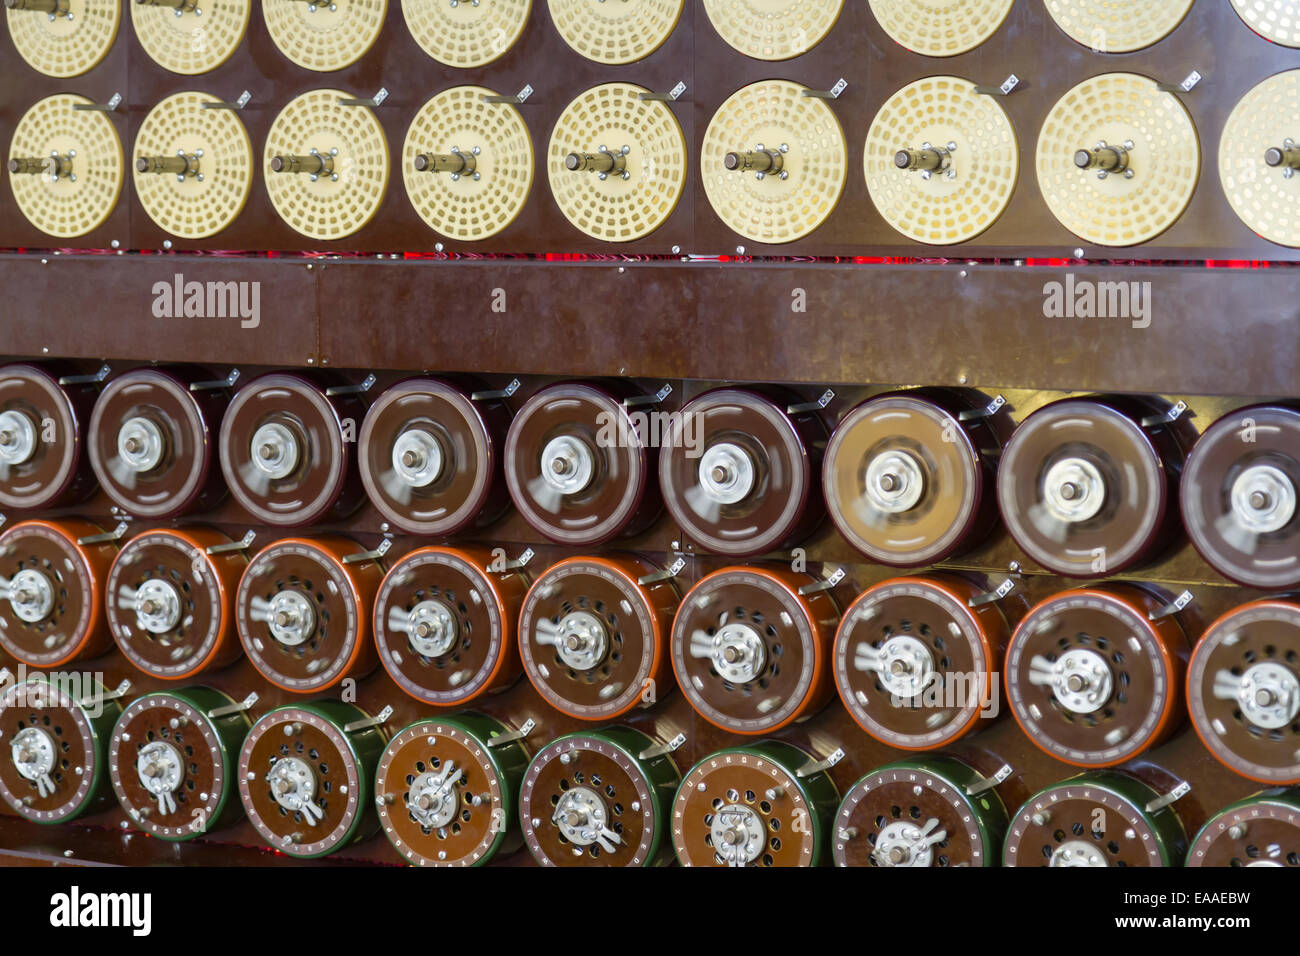 Rebuilt Turing Bombe in action at Bletchley Park, showing rotation of upper row of drums and middle row of drums Stock Photo